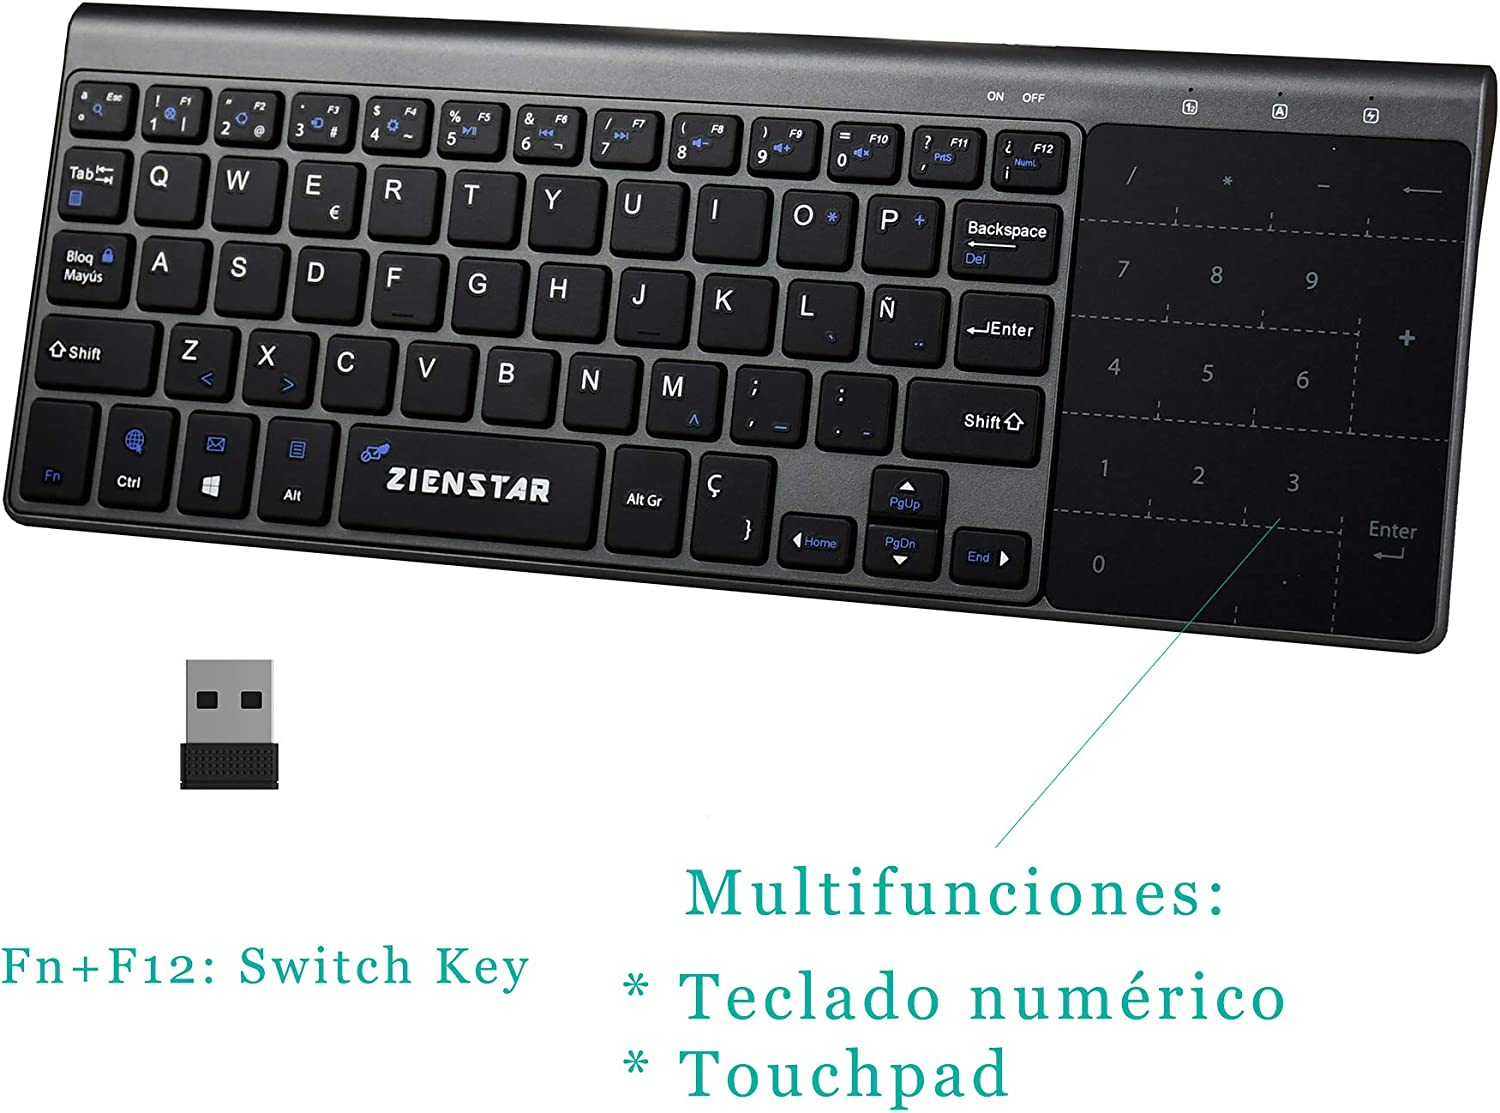 Zienstar-2.4Ghz Mini Teclado Inalámbrico con Touchpad y Teclado Numérico, Receptor USB para Smart TV, Android TV Box, HTPC, IPTV, XBOX360, PS3, PC, etc- Español